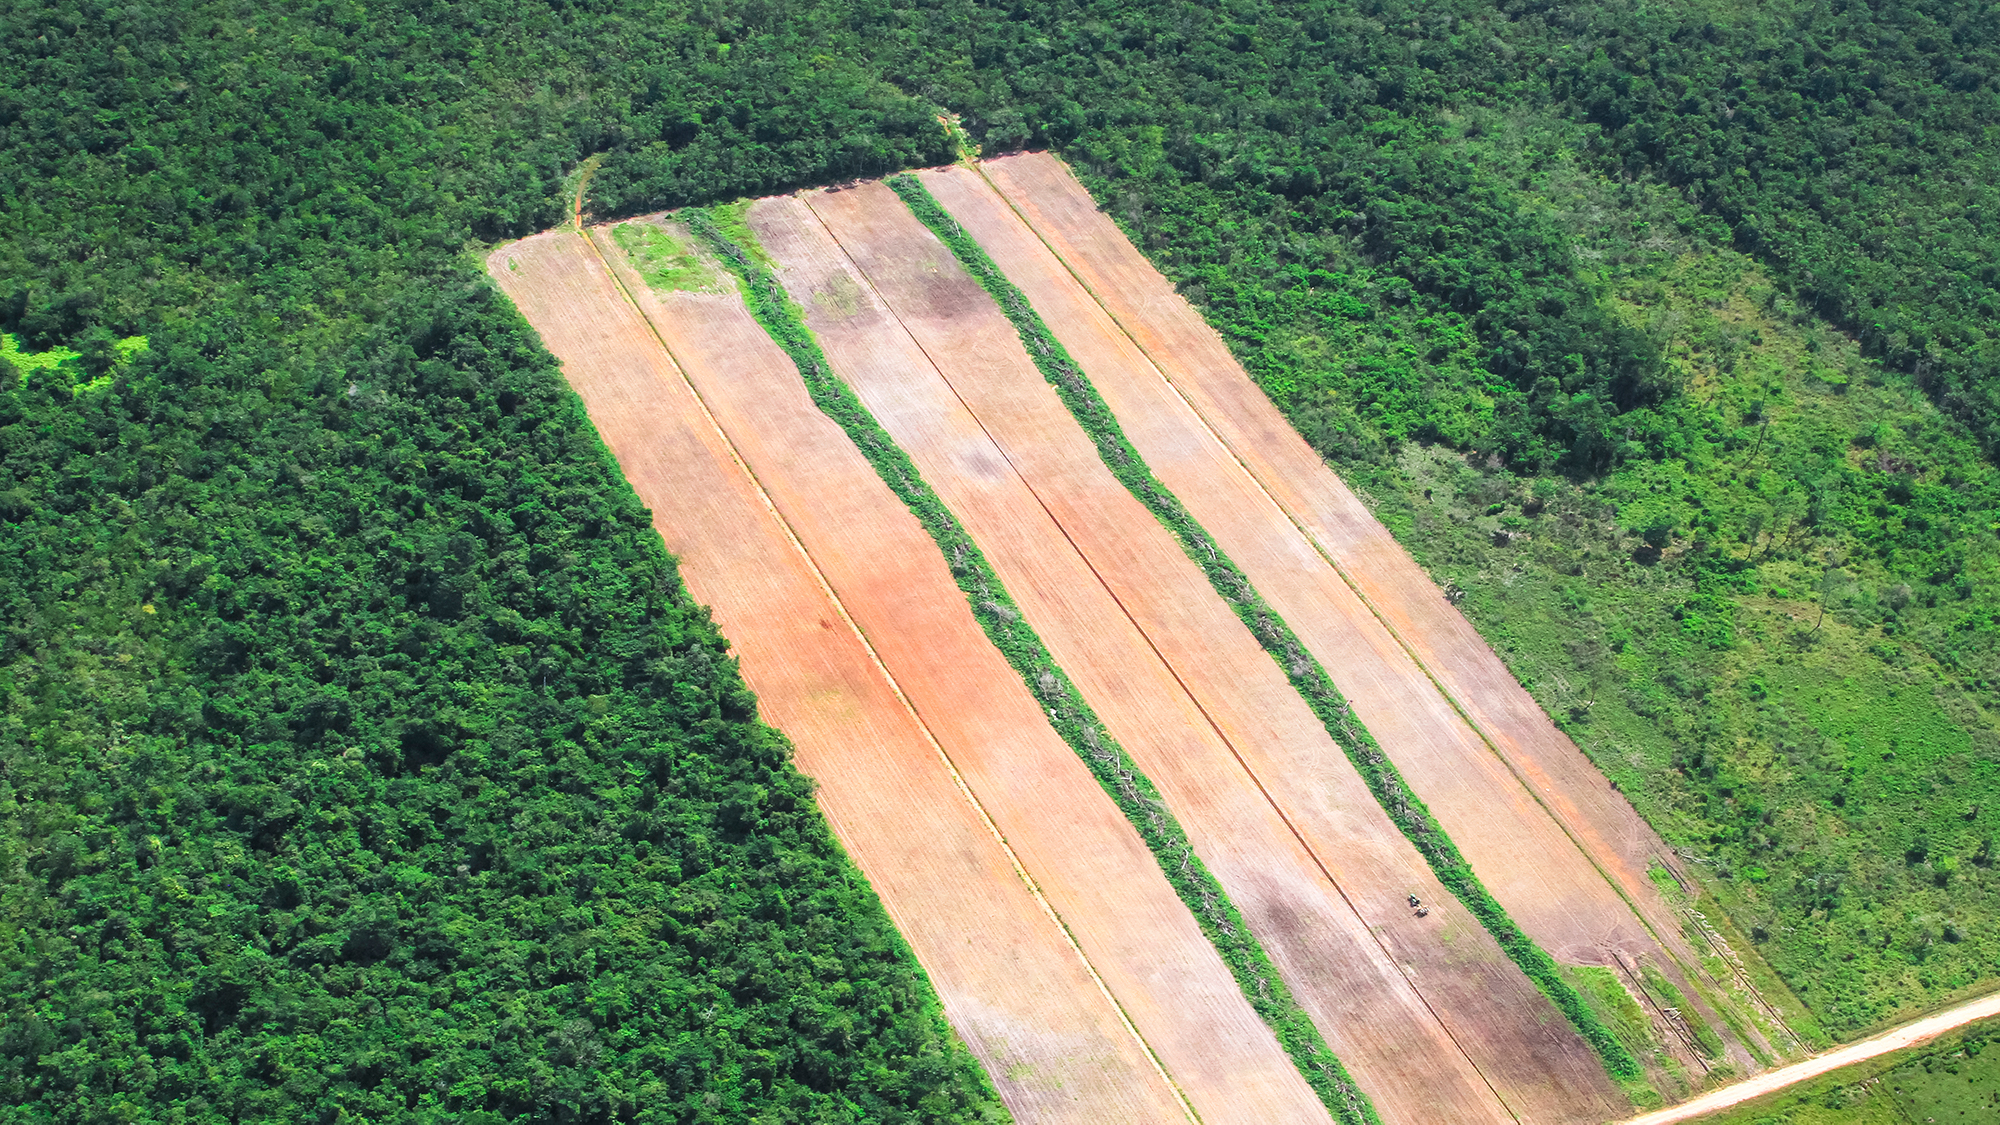 Slash and burn clear felling in Belize Rainforest illustrates our lack of care for ecosystems.